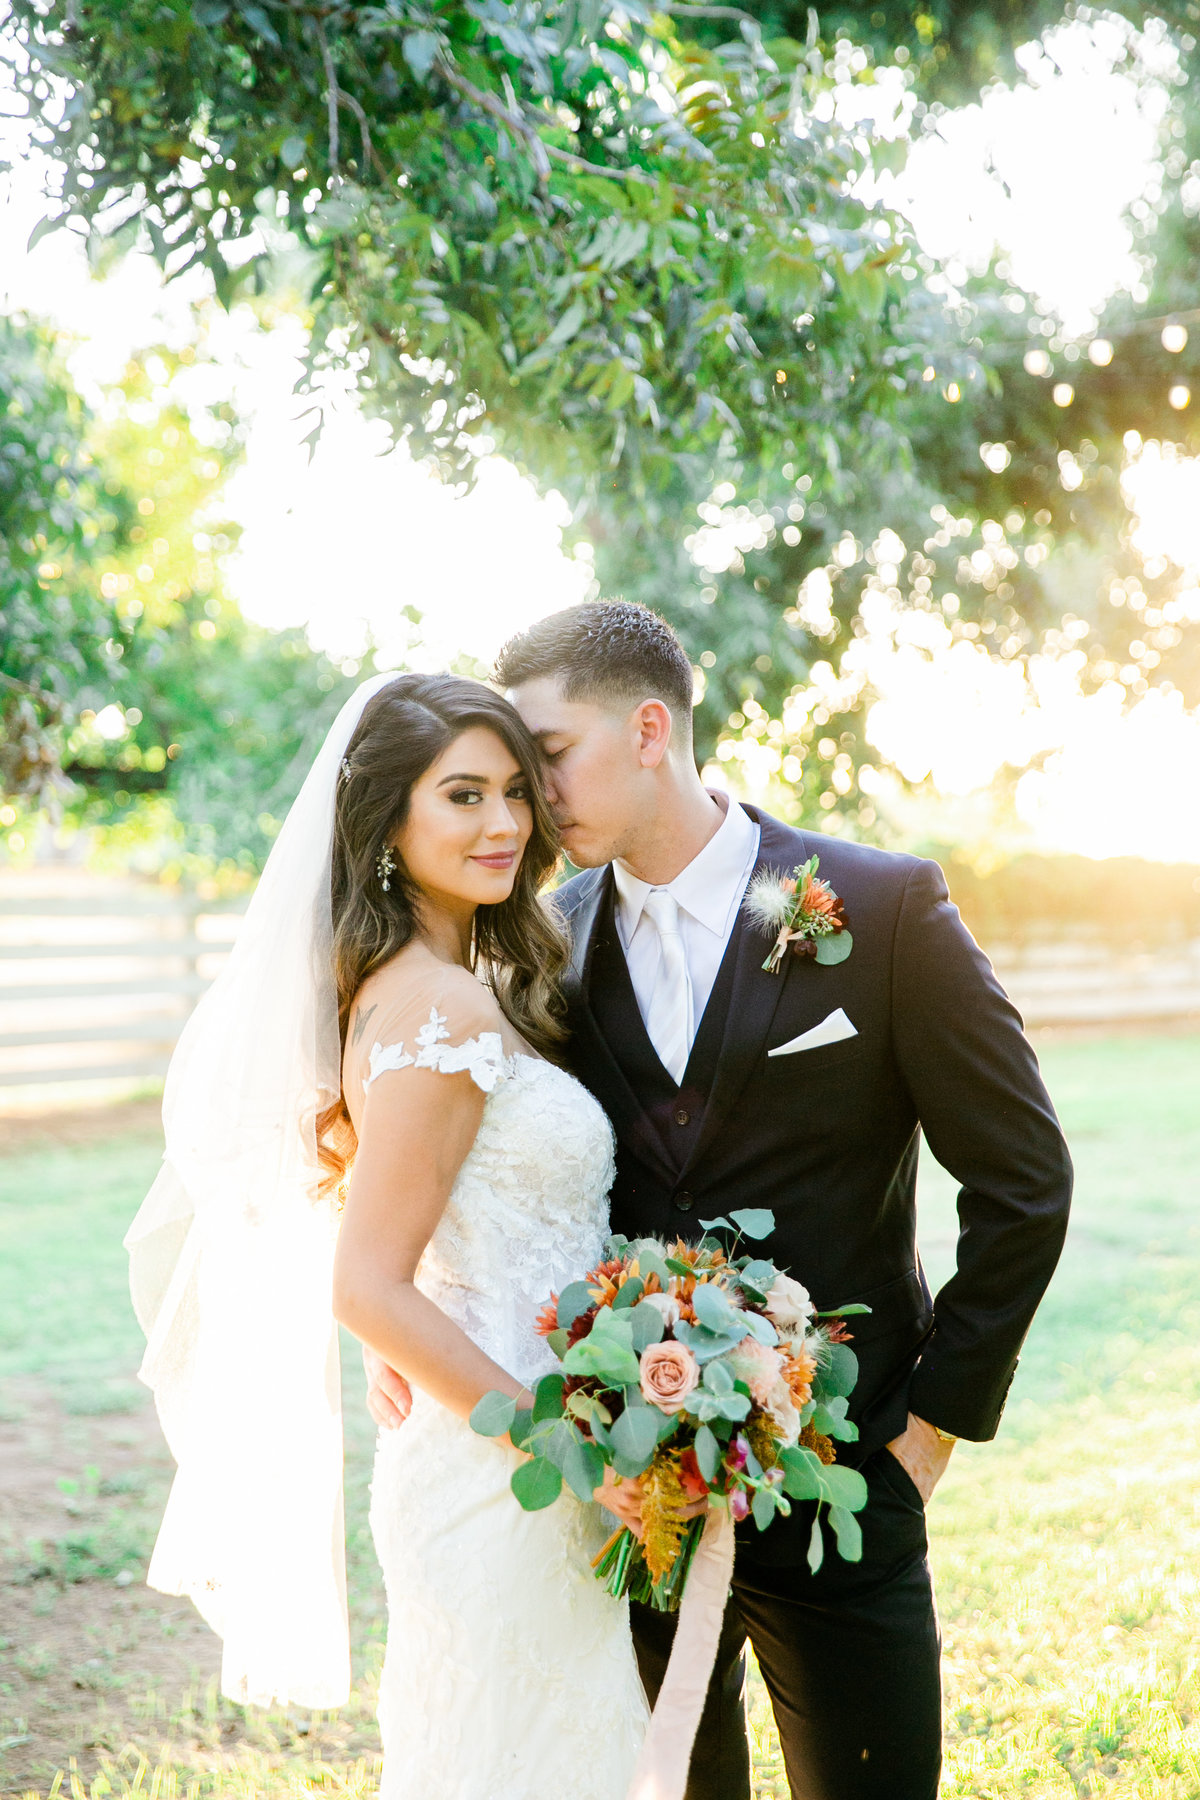 Karlie Colleen Photography - Phoenix Arizona - Farm At South Mountain Venue - Vanessa & Robert-560